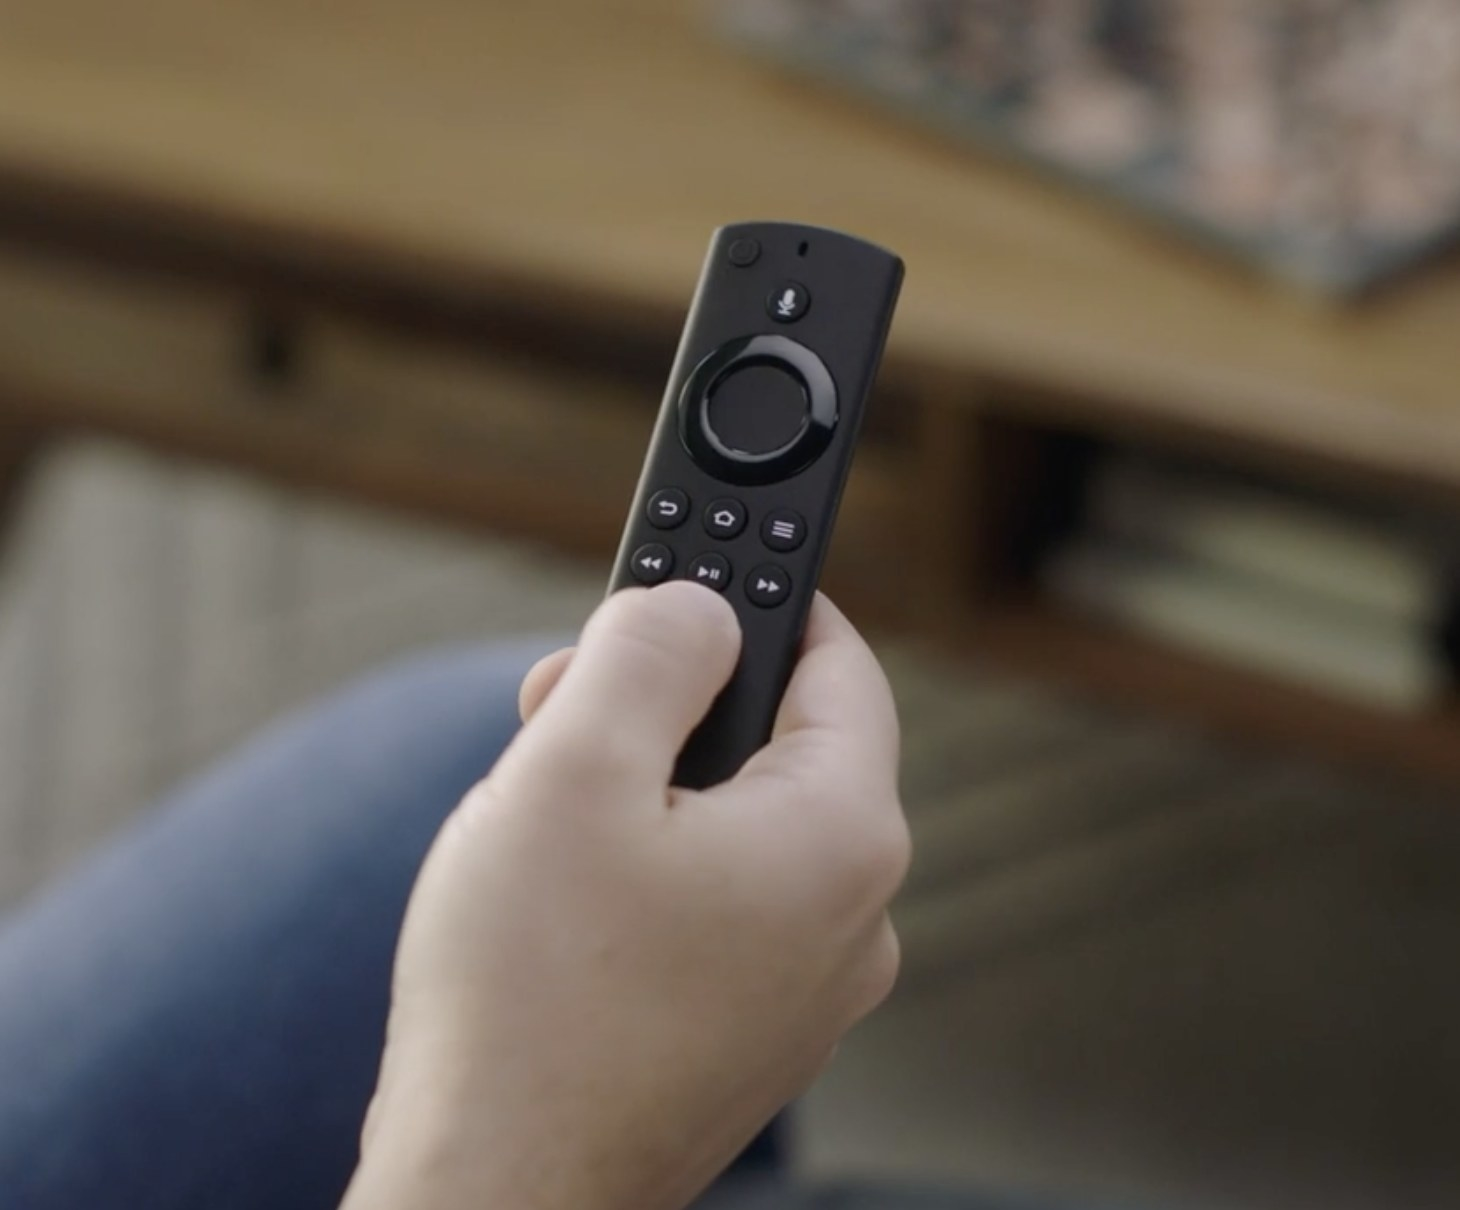 Person is holding the Amazon Fire stick